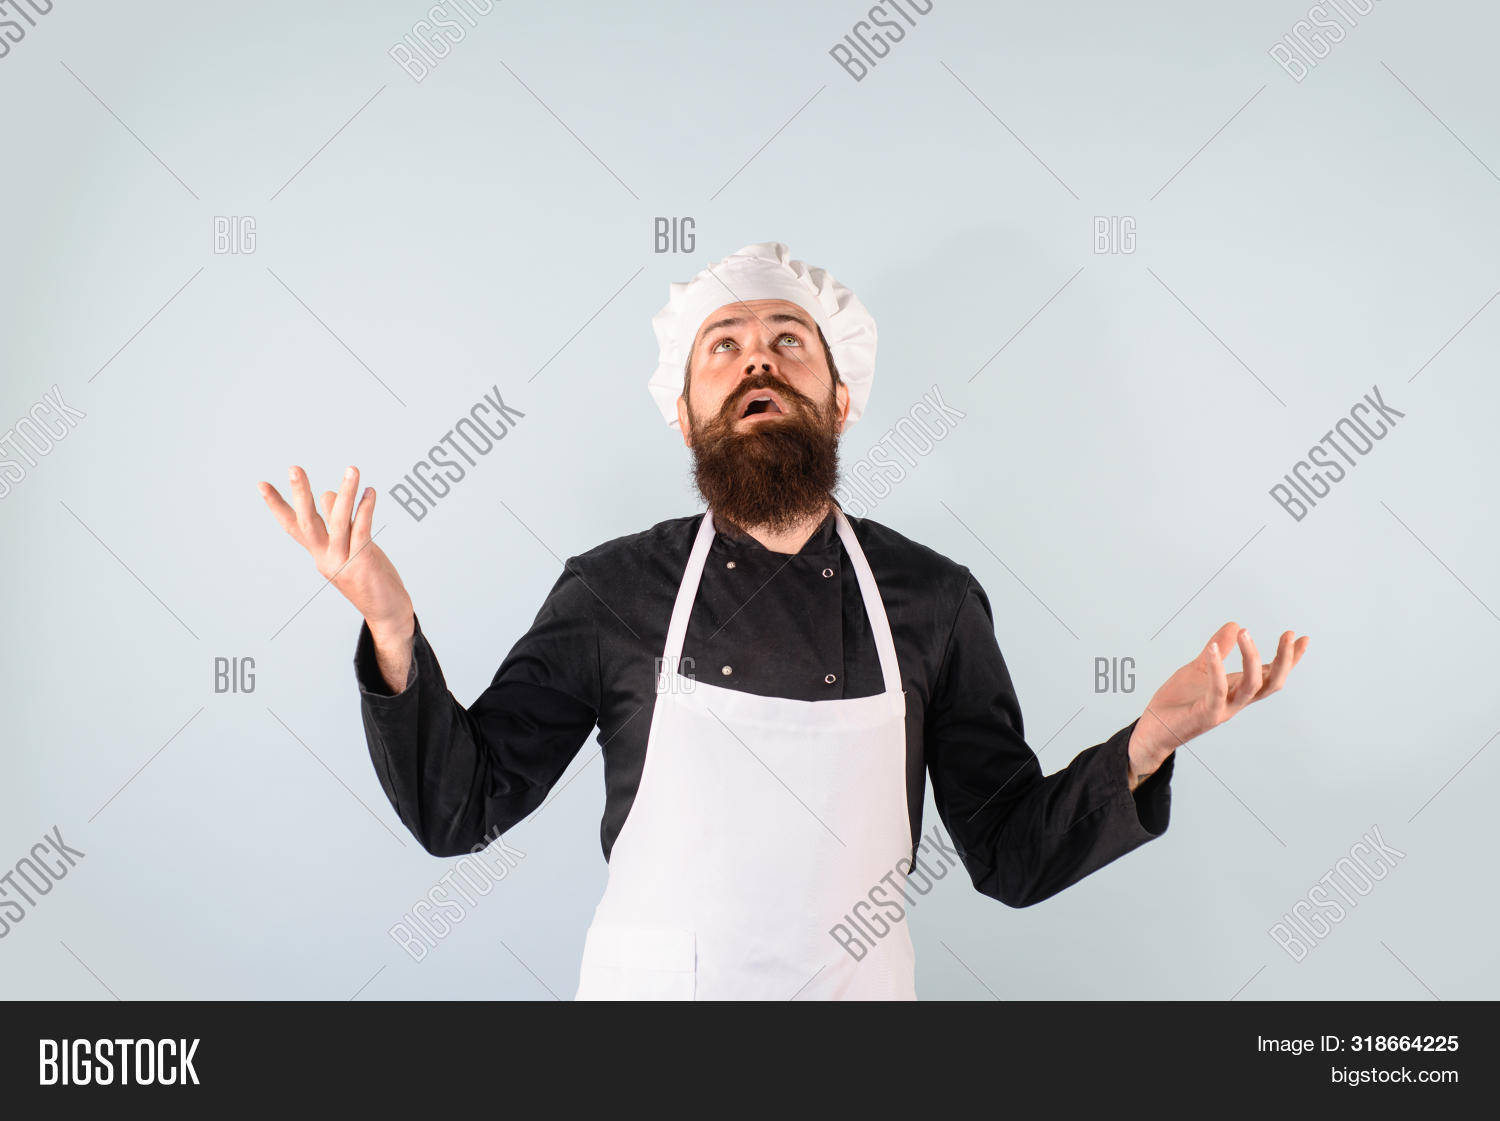 apron,arms,bake,baker,bakery,baking,bearded,business,cap,catering,chef,chief,class,confident,cook,cooking,cuisine,culinary,diet,dish,eat,food,fresh,gesture,gesturing,guy,hand,hat,head,healthy,home,industry,kitchen,male,man,meal,meat,menu,moustache,mustache,nutrition,pensive,professional,recipe,restaurant,serving,success,tasty,uniform,worker